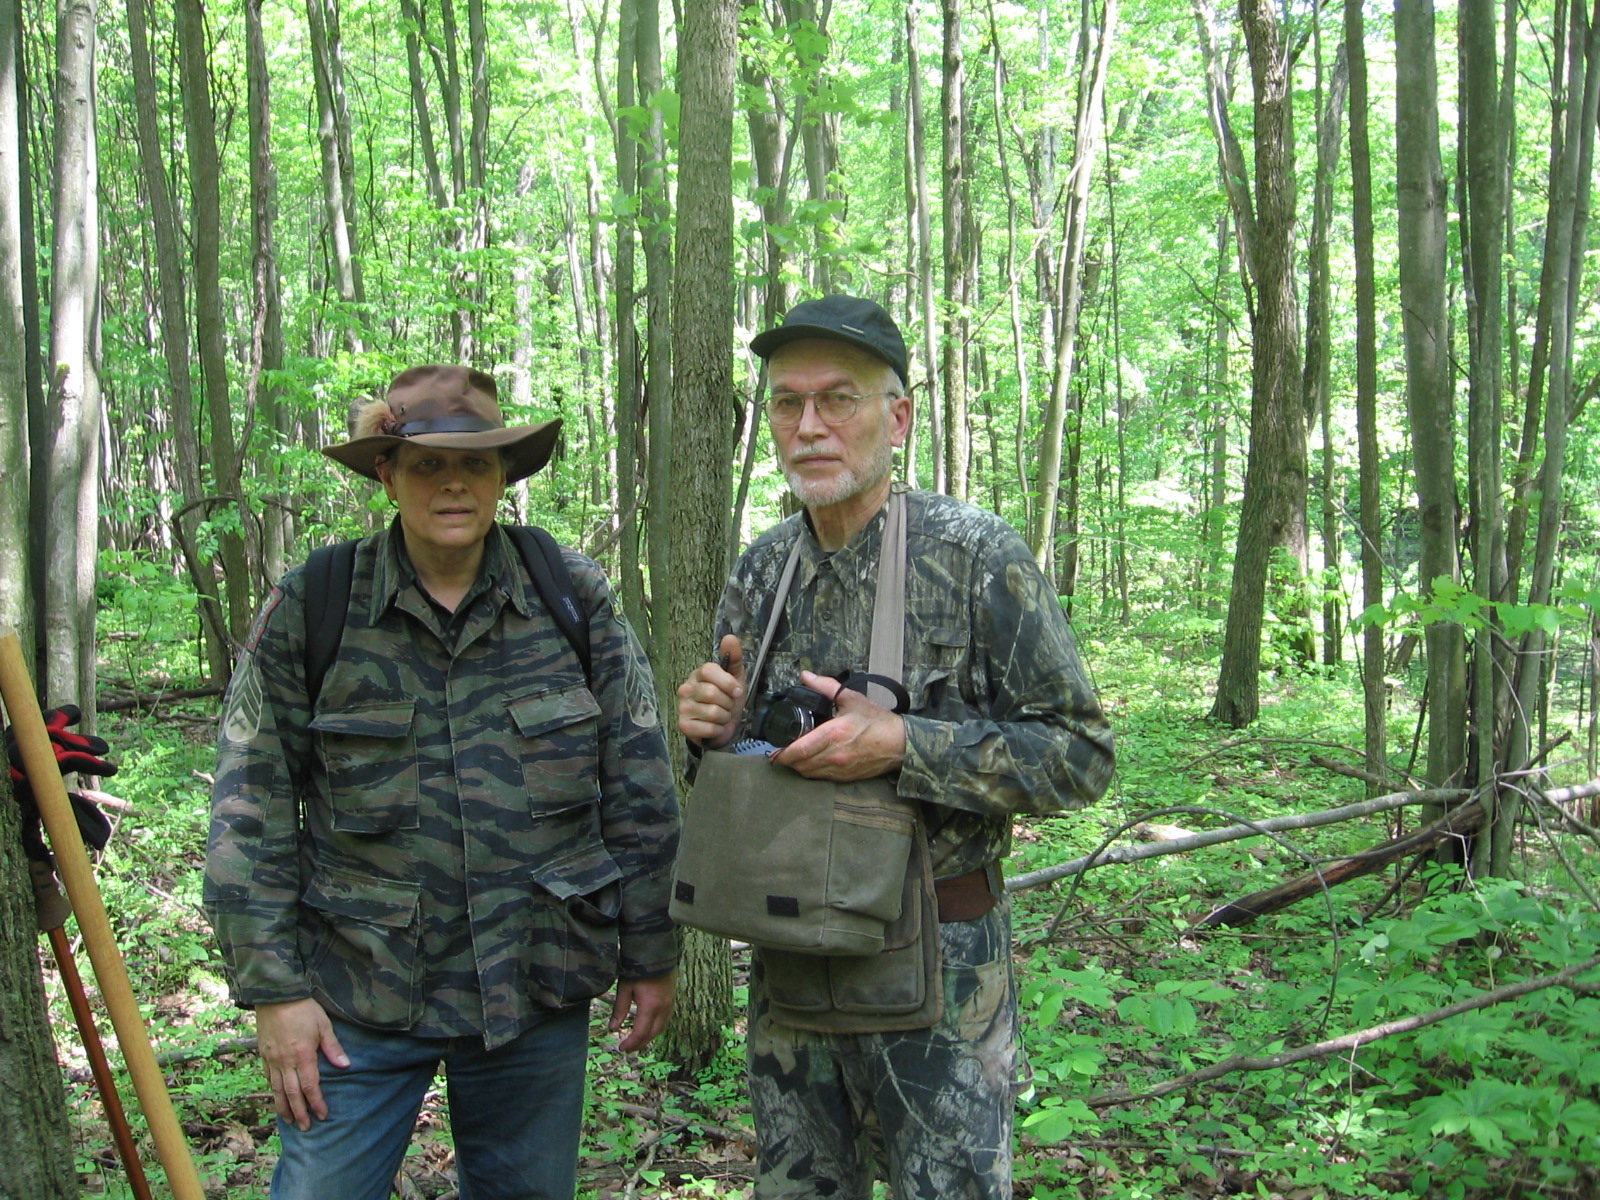 Joe Stewart on left and Dr. Igor Burtsev on right